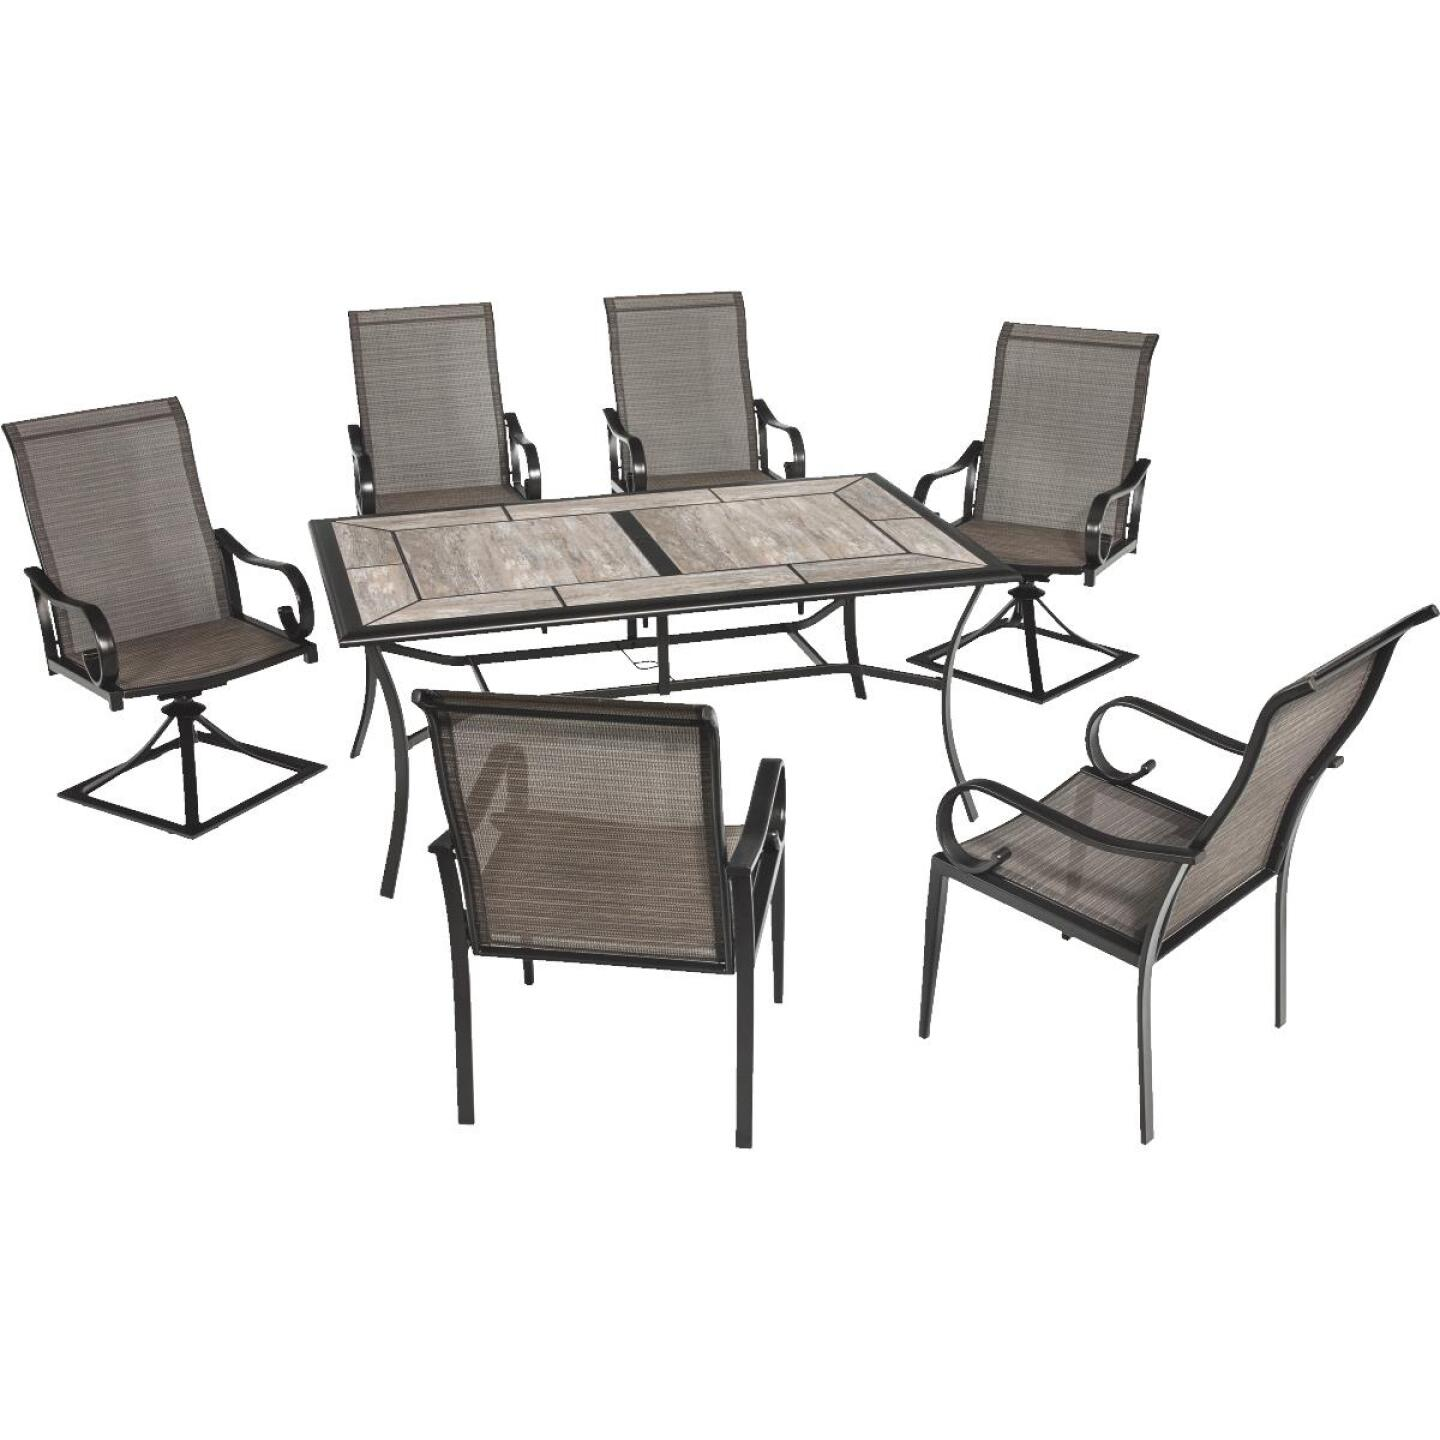 Outdoor Expressions Berkshire 7-Piece Dining Set Image 27